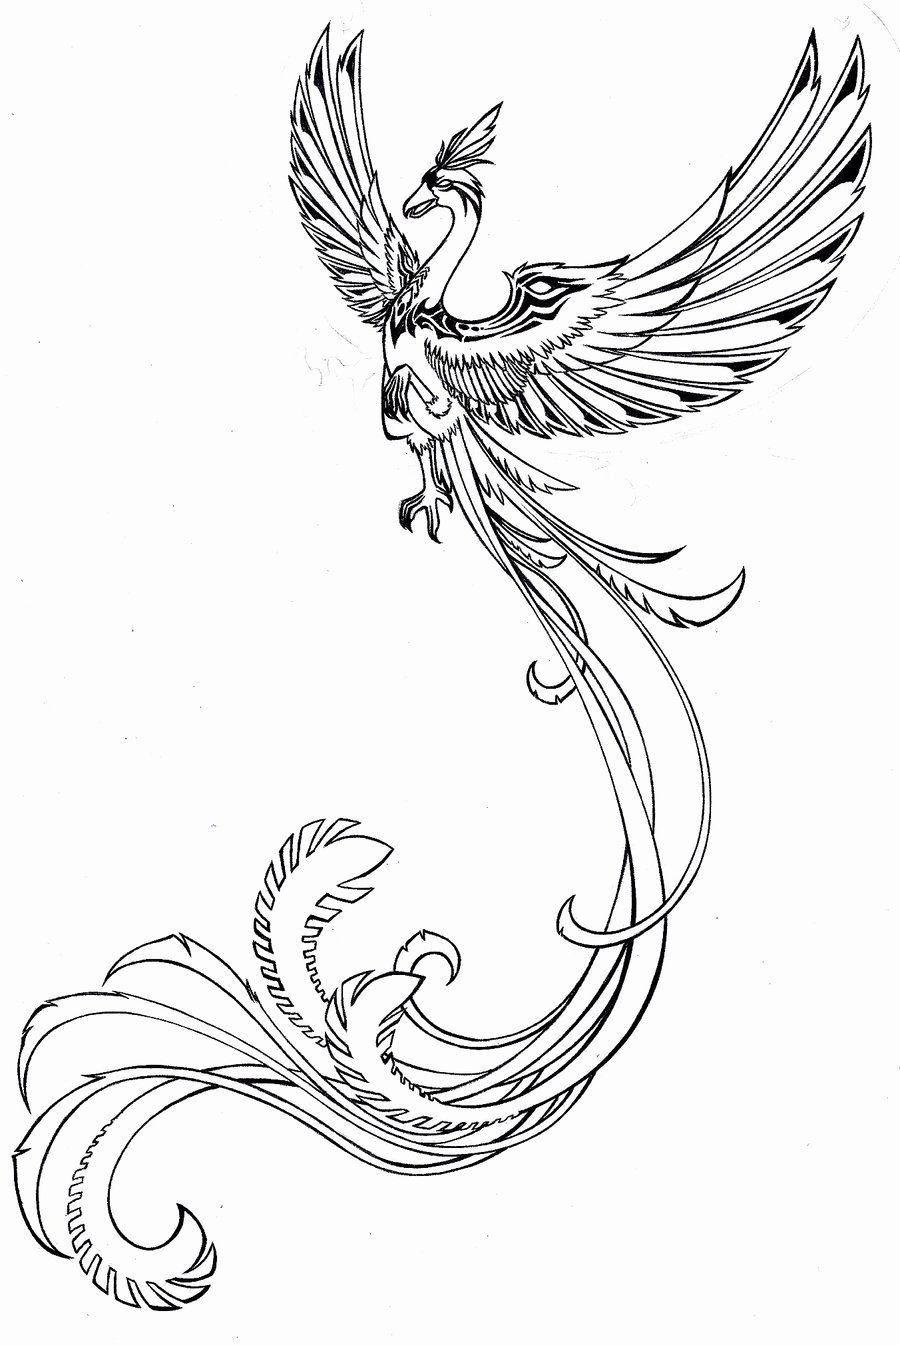 Black and White Phoenix Lovely Phoenix Tattoos for Women